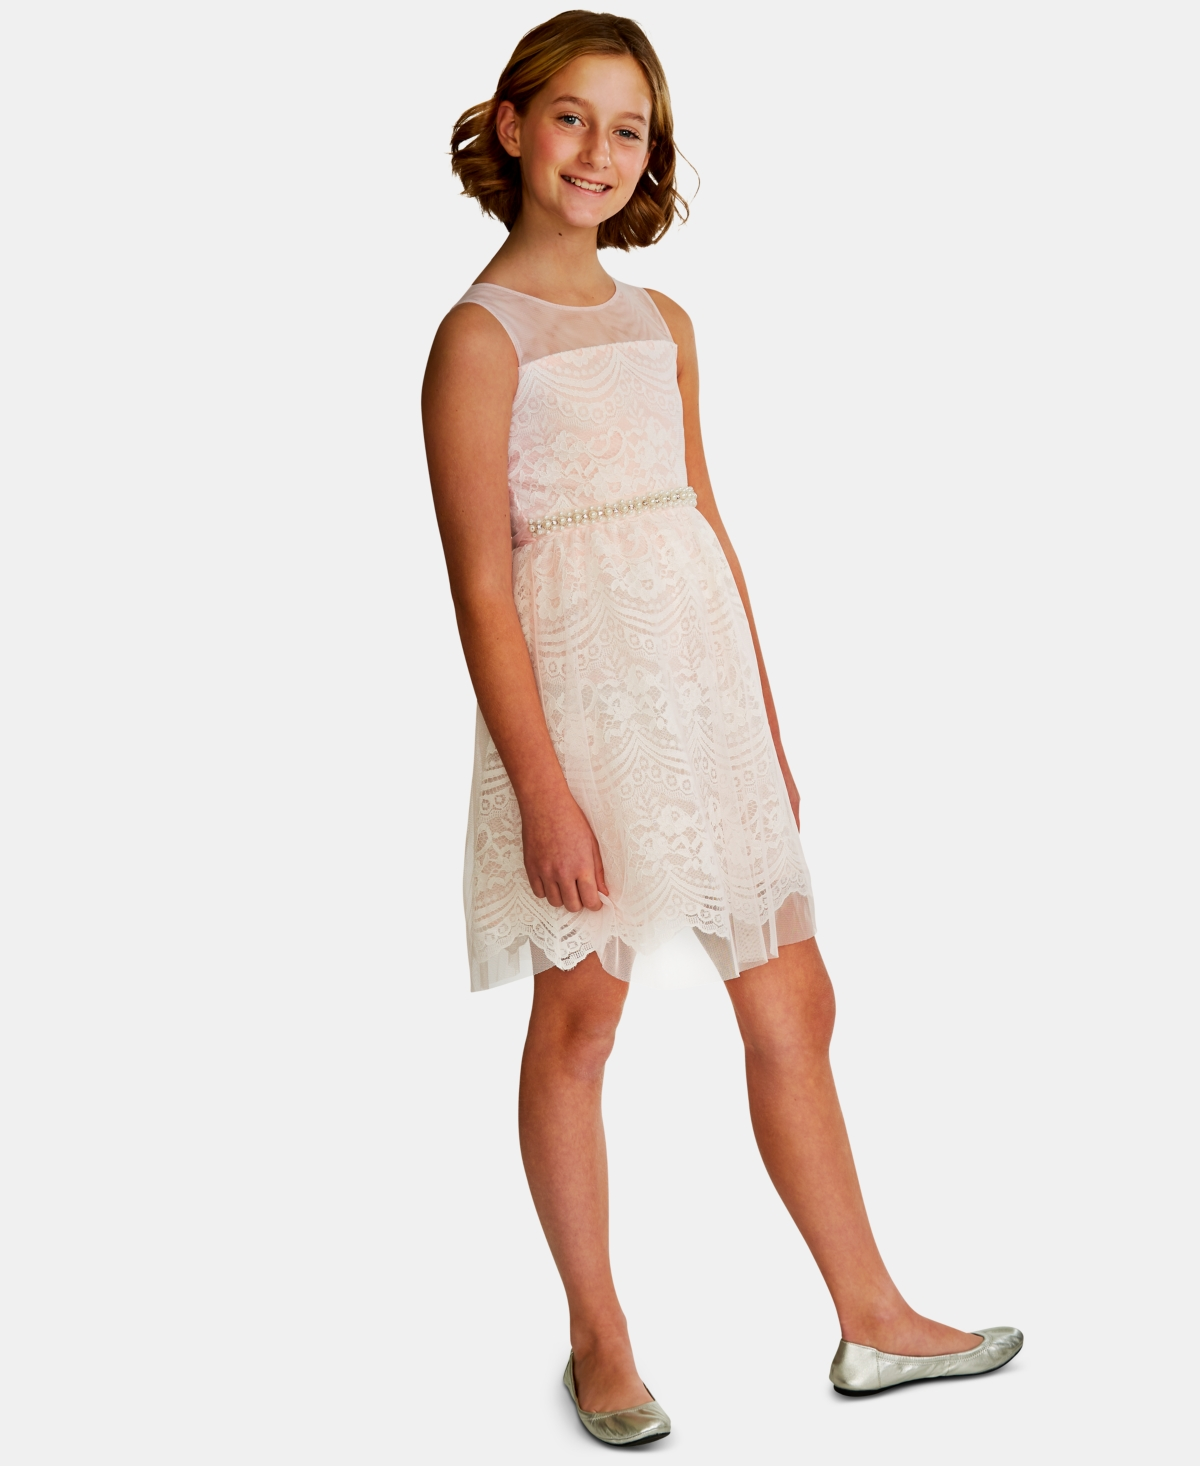 11292810 fpx - Kids & Baby Clothing